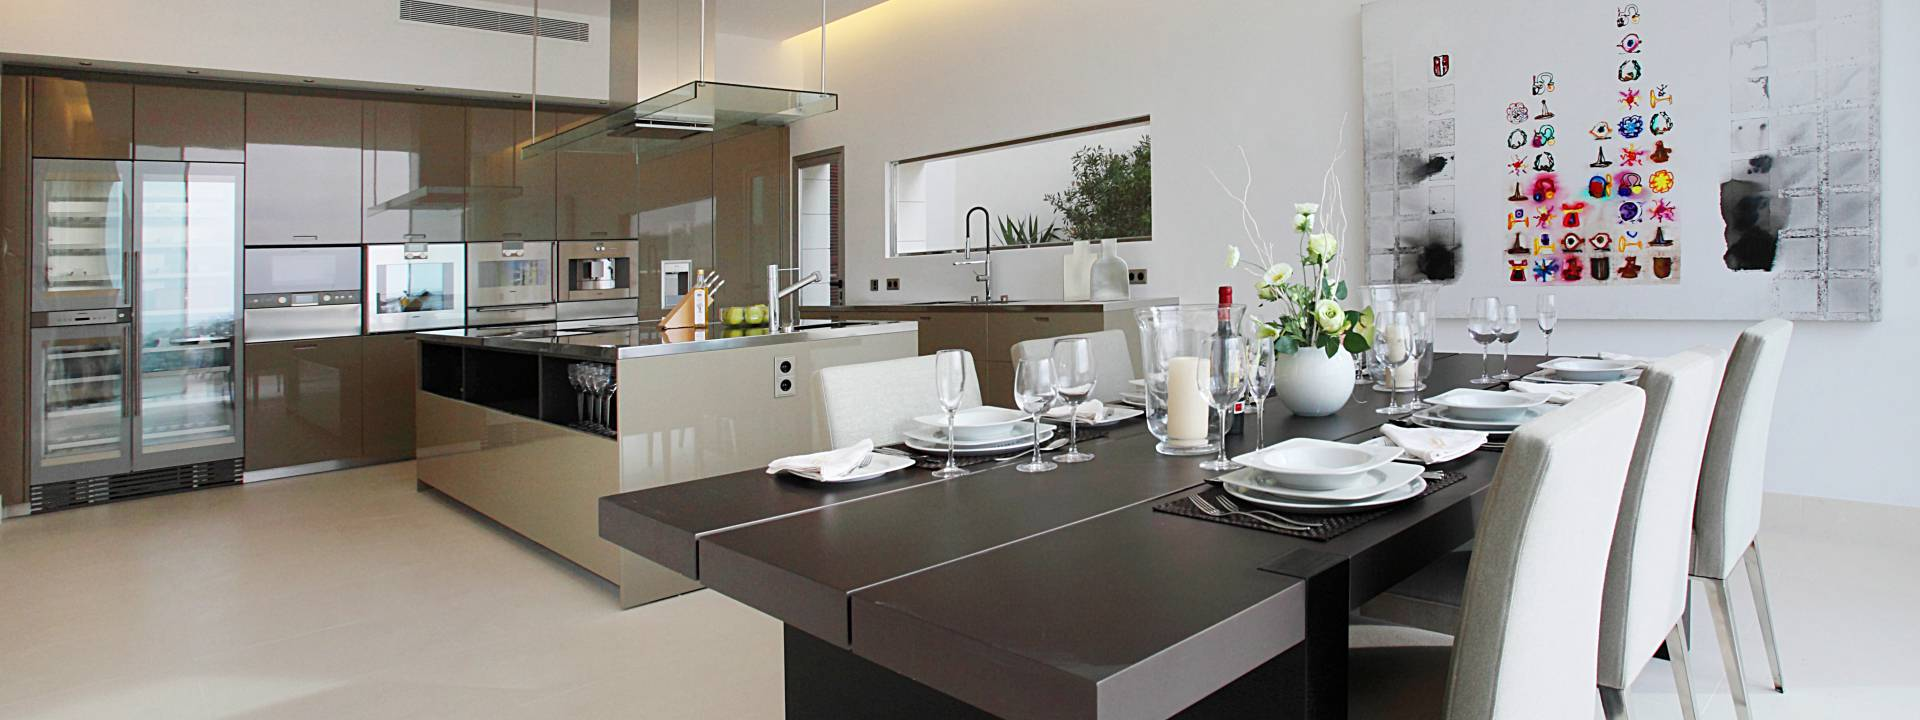 Luxury-villa-Mallorca-kitchen-dining-room-Interior-design